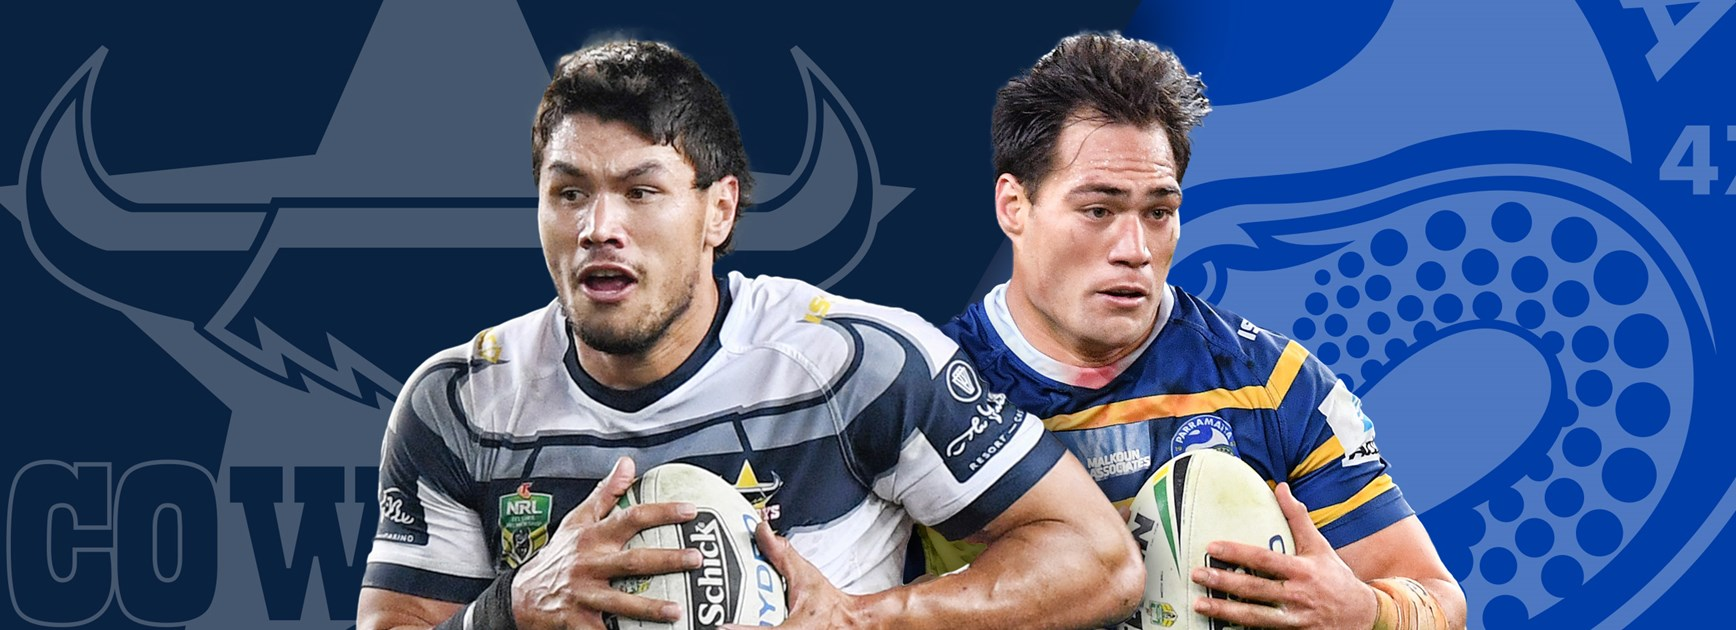 Cowboys v Eels, Round 24 Match Preview